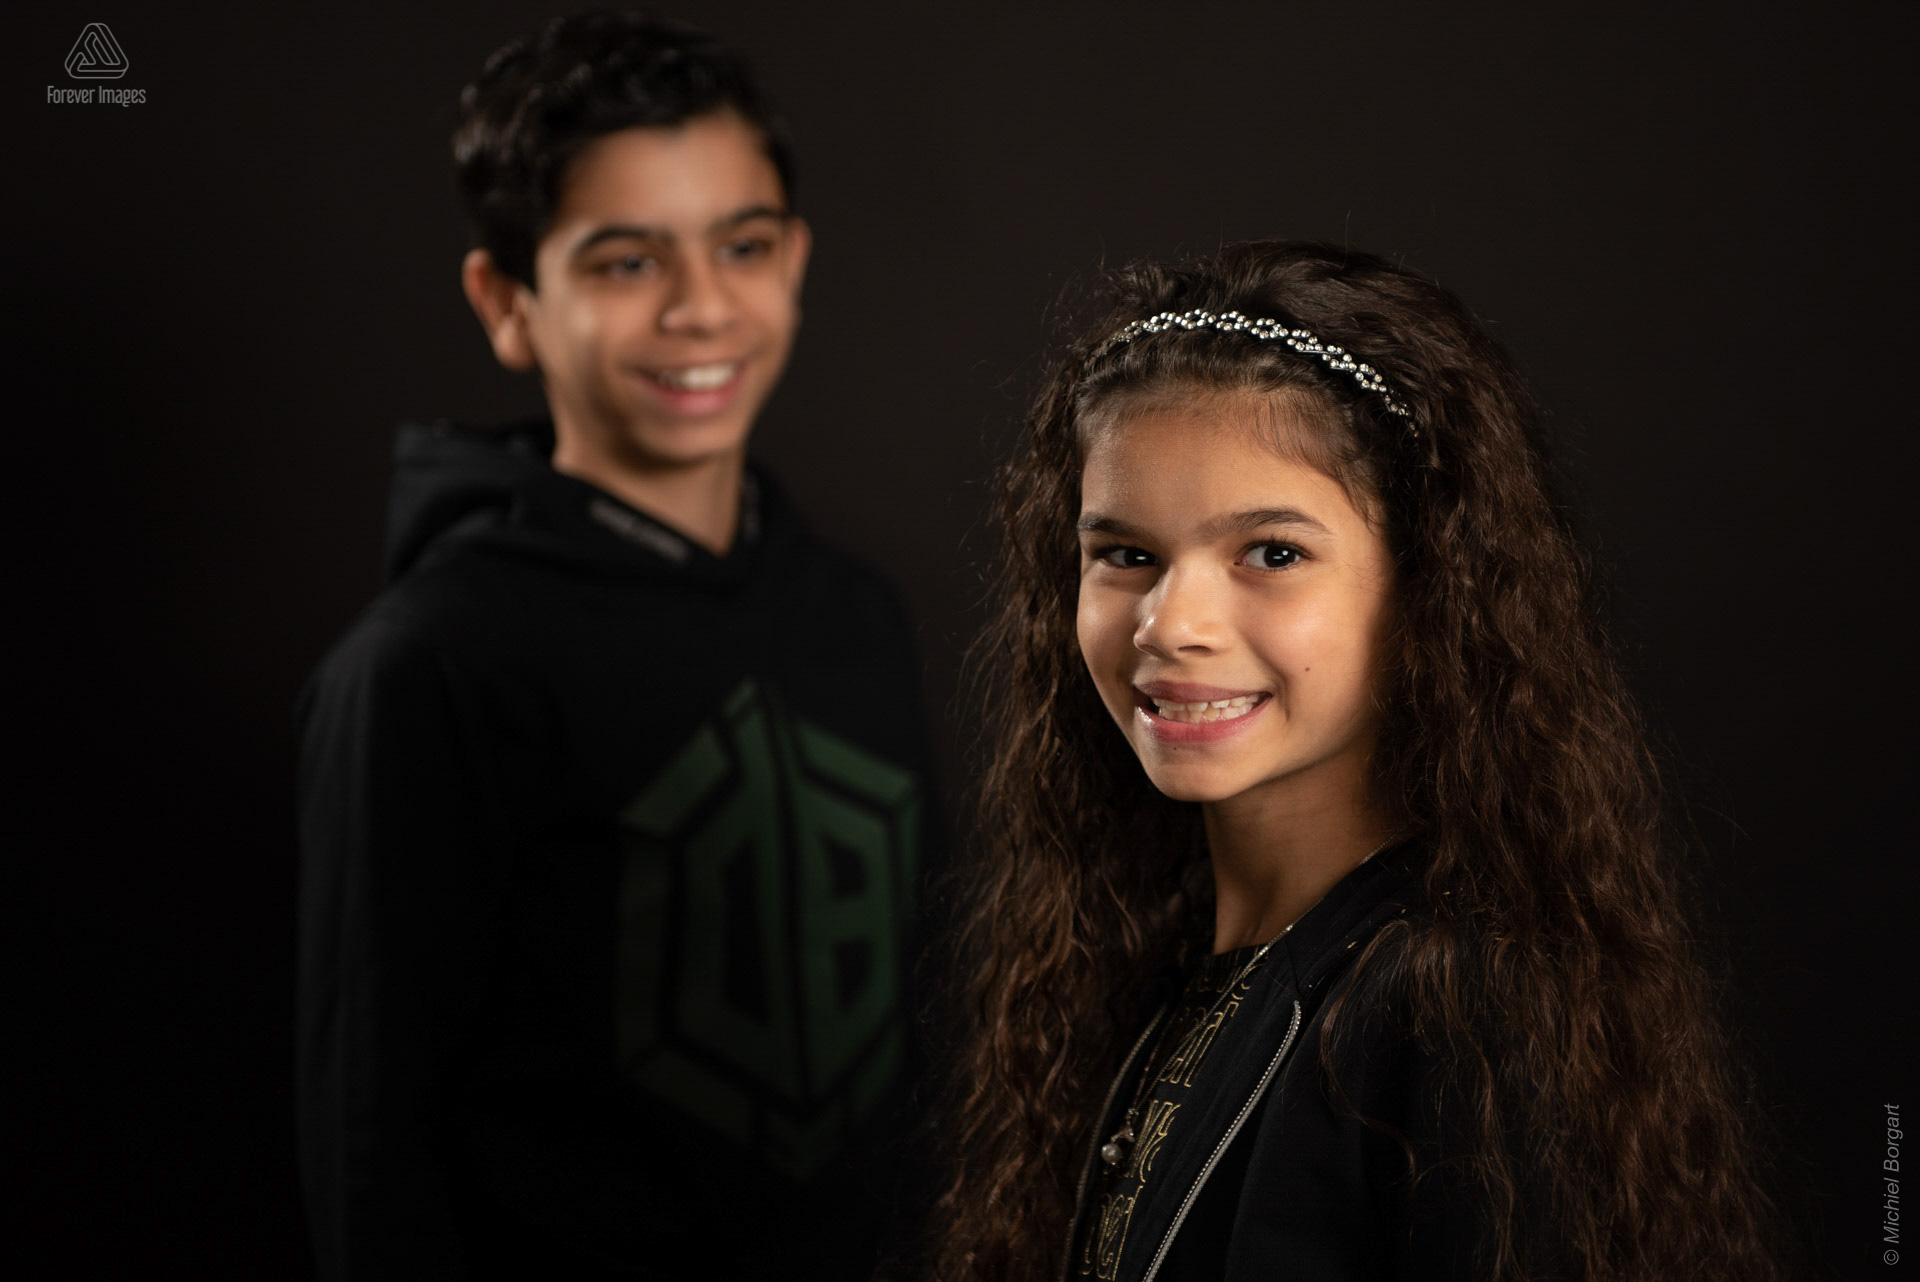 Portrait photo childern brother looks at sister | Chhaya Noam Grishaver | Portrait Photographer Michiel Borgart - Forever Images.